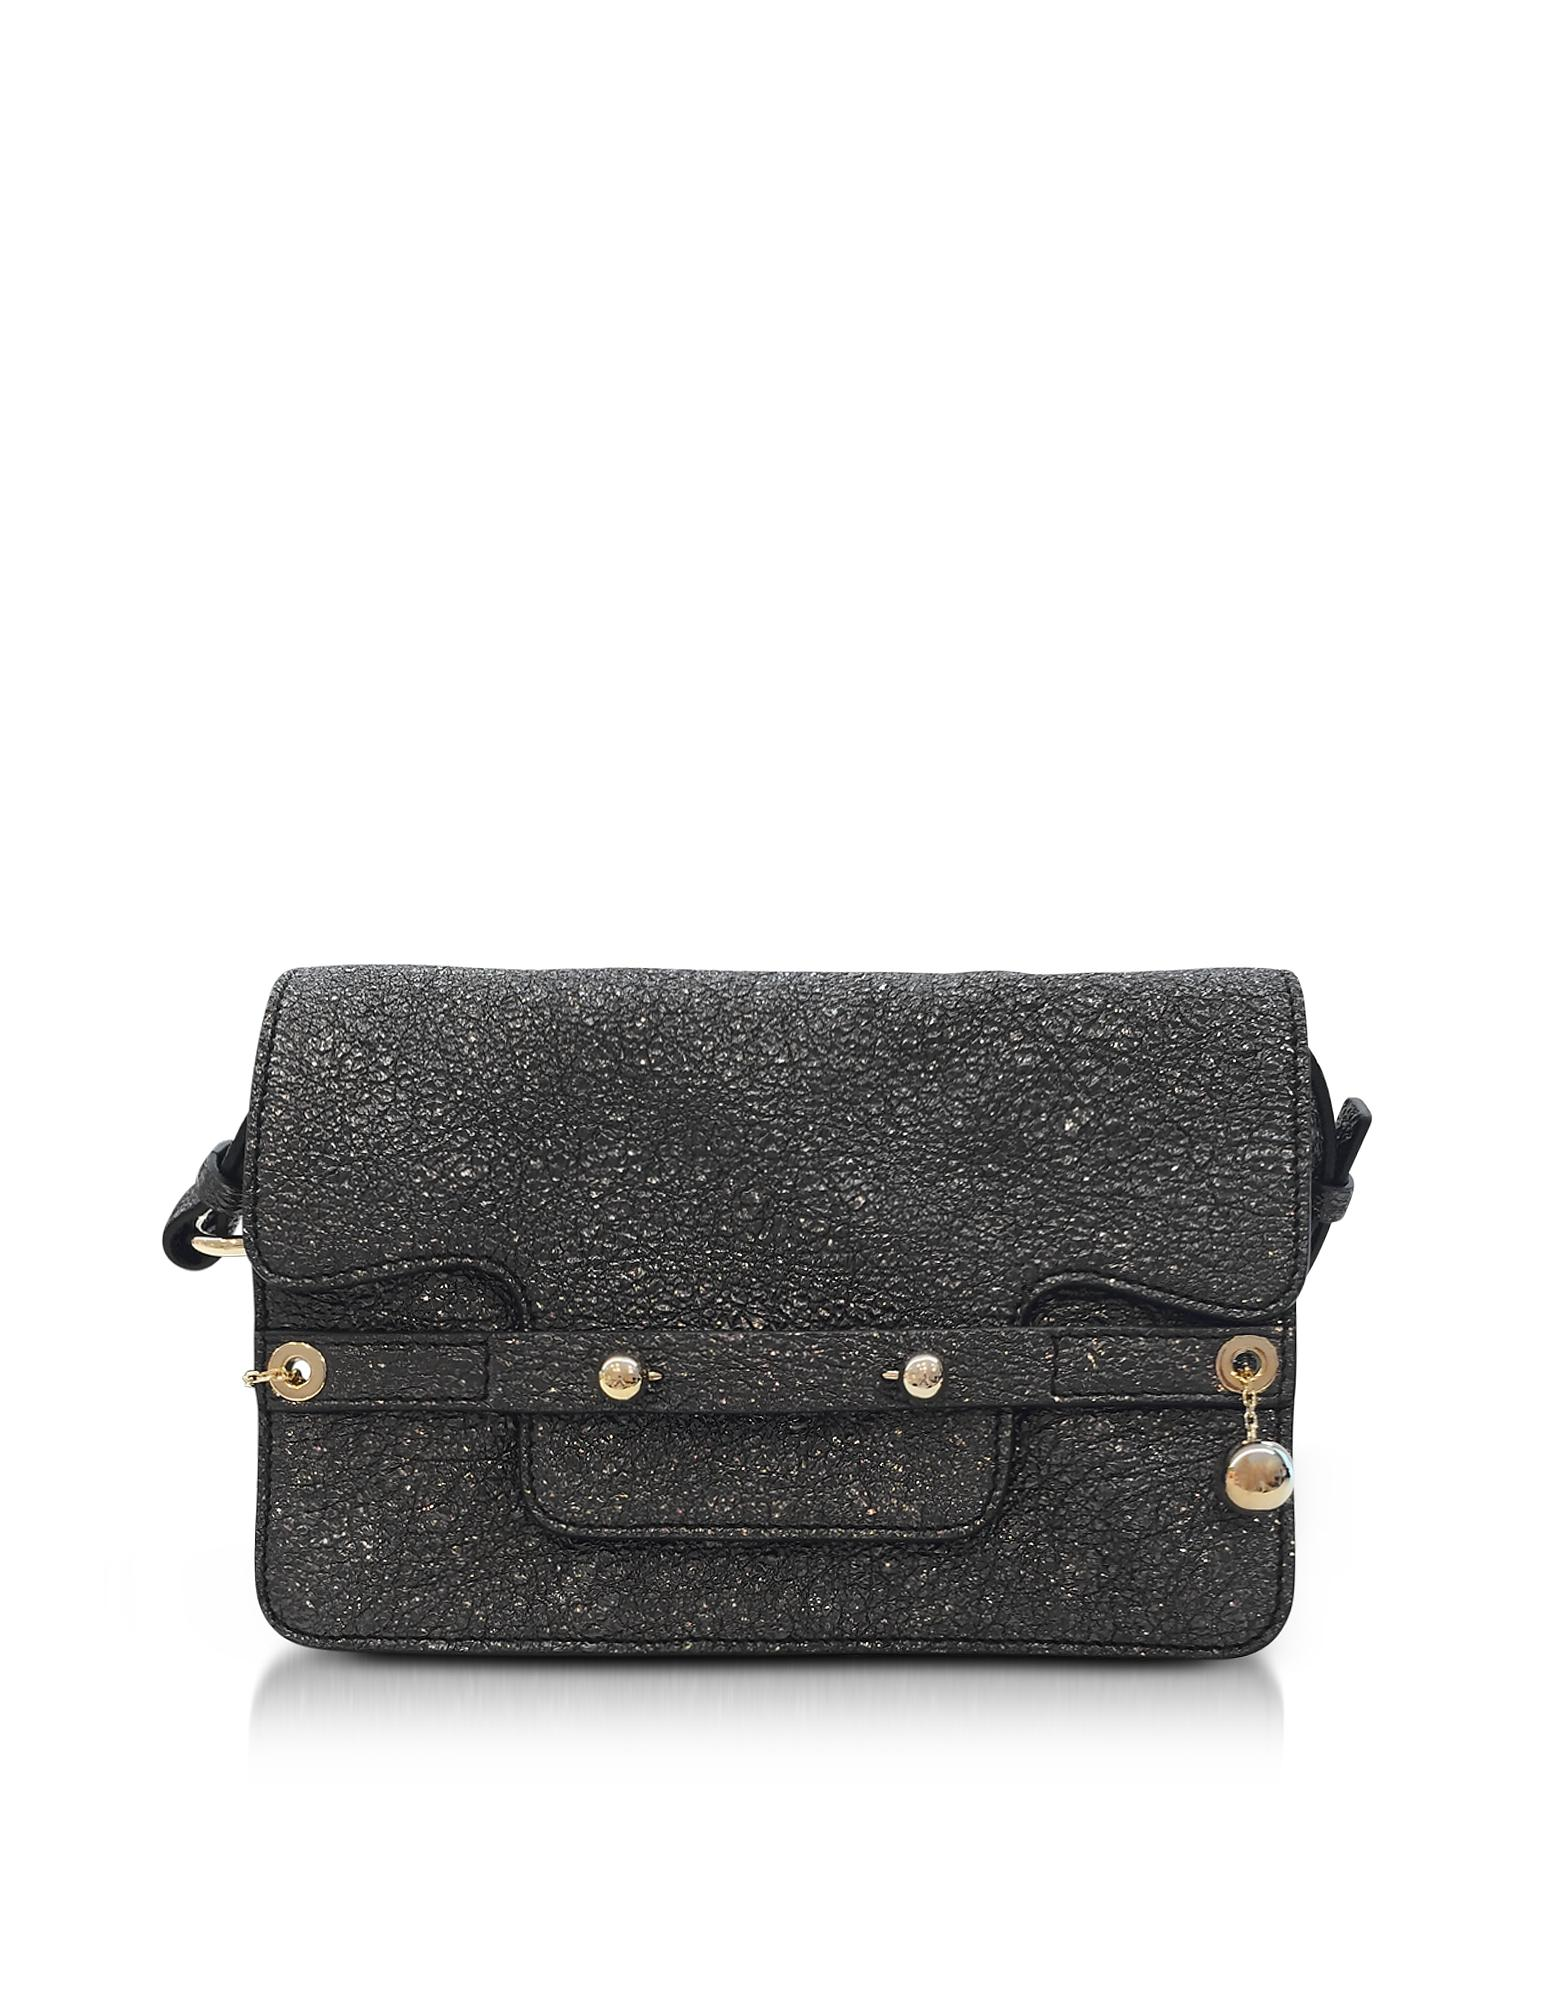 Red Valentino Gunmetal Crackled Metallic Leather Flap Top Crossbody Bag